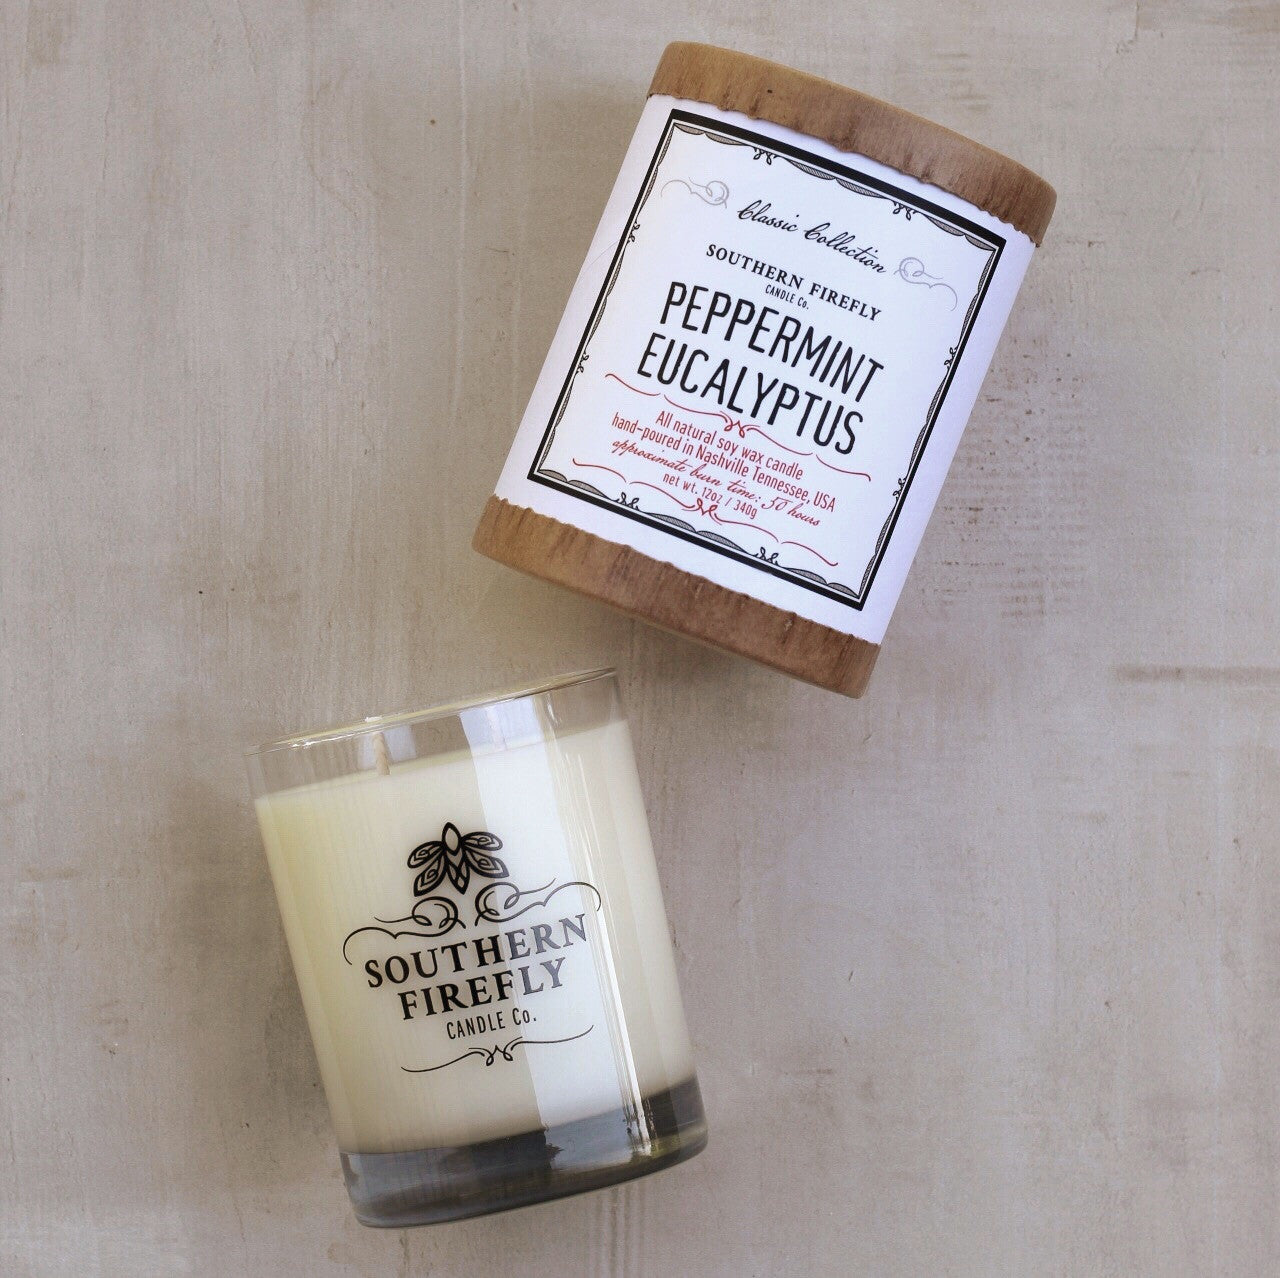 PEPPERMINT EUCALYPTUS LARGE CANDLE